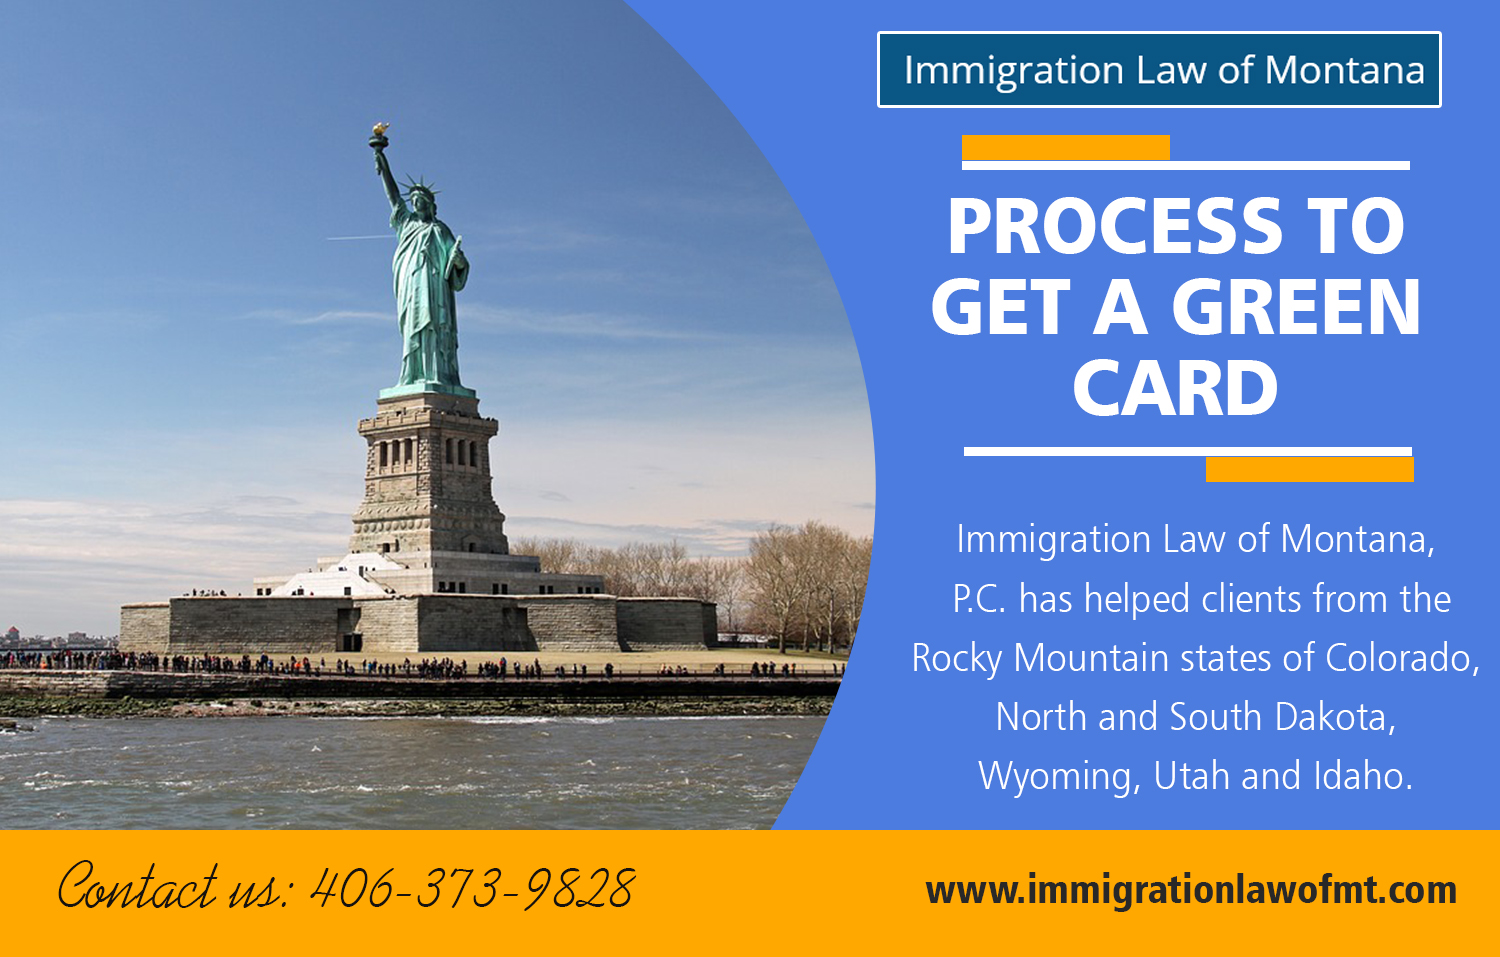 Sheepherder Green Card | Application Process Steps